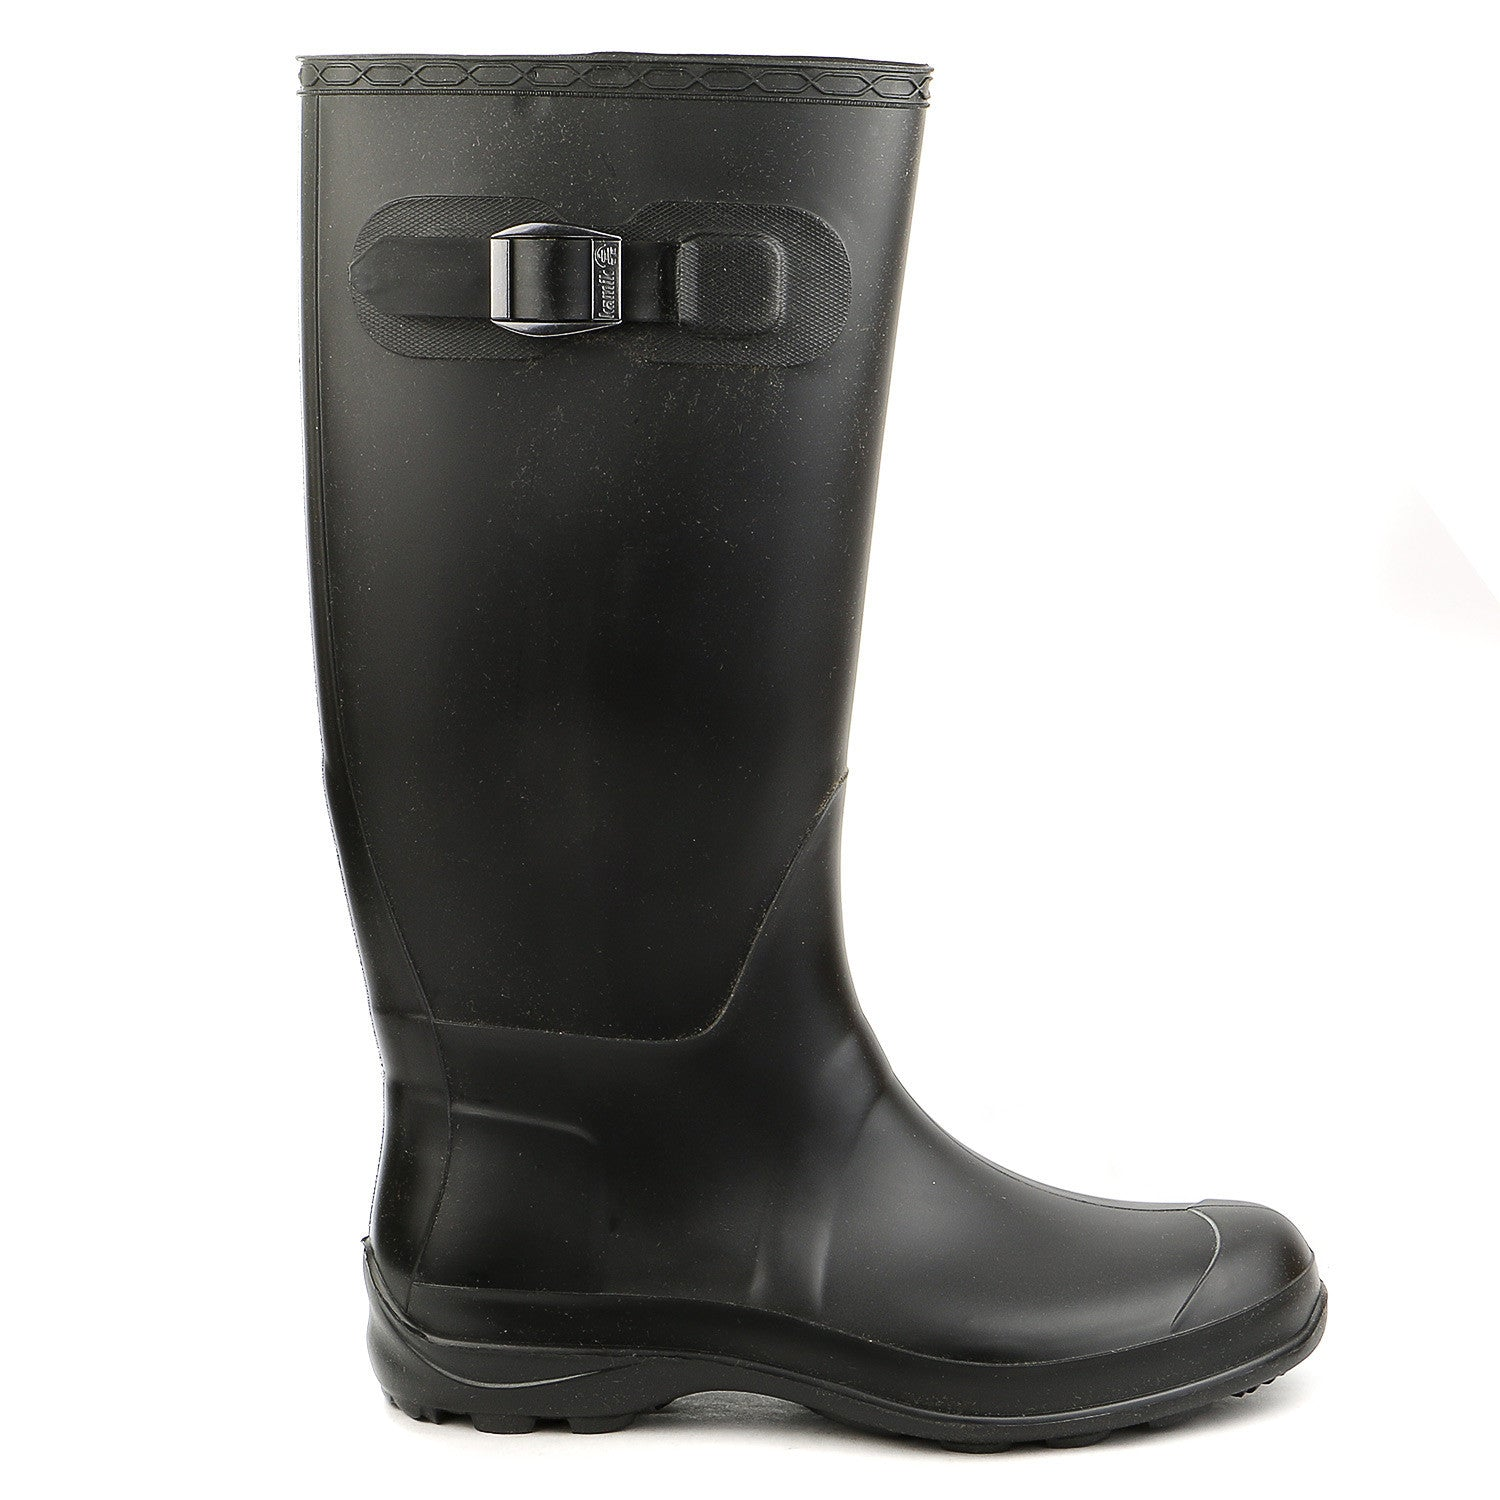 2ec6c49c3794 Kamik Olivia Rain Boot - Black - Womens - Shoplifestyle